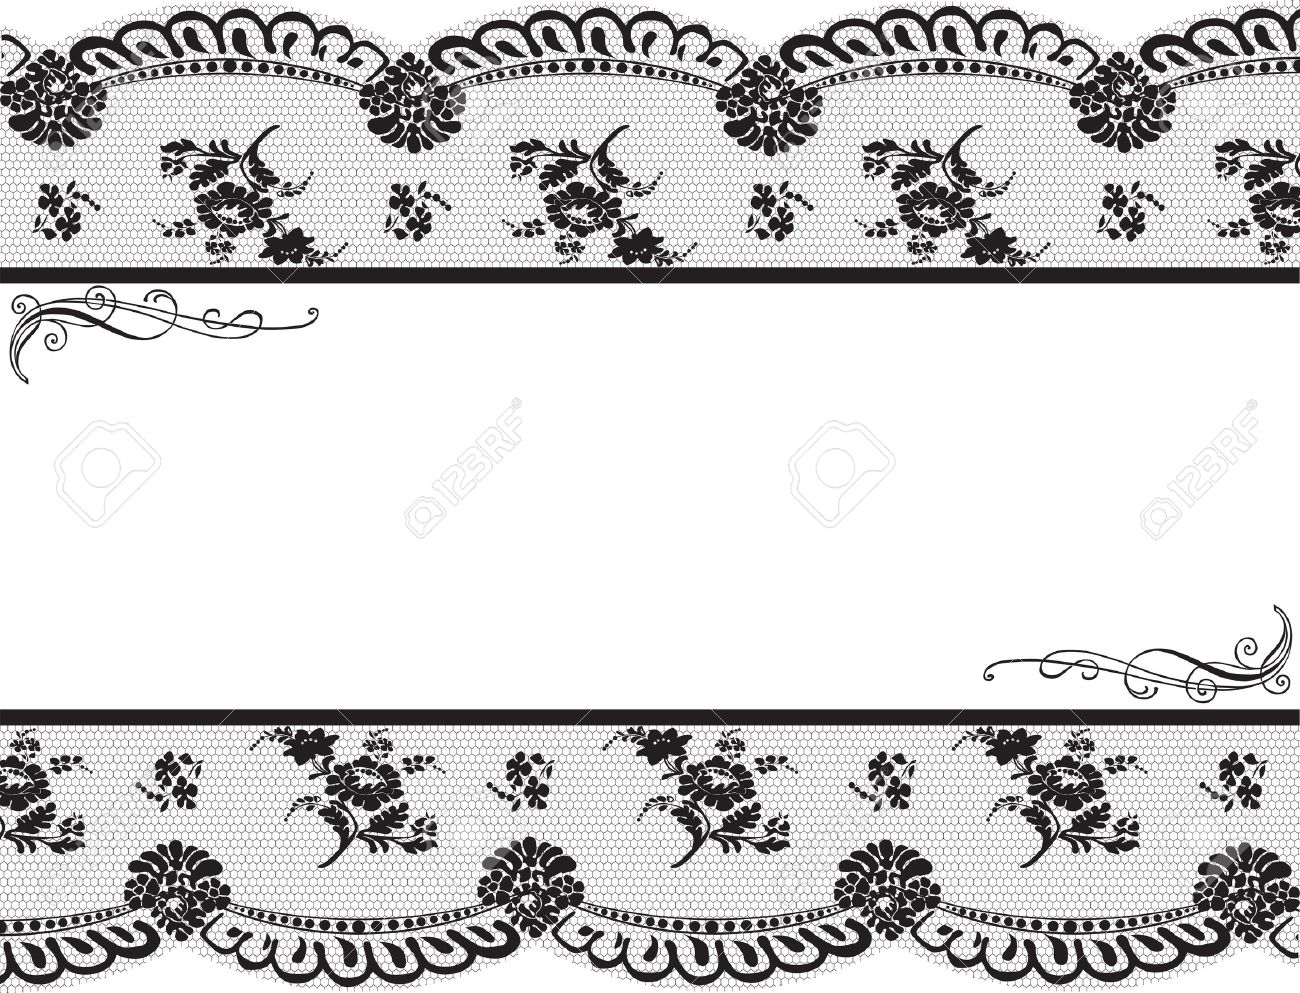 Framed With Black Lace On A White Background Royalty Free Cliparts ...